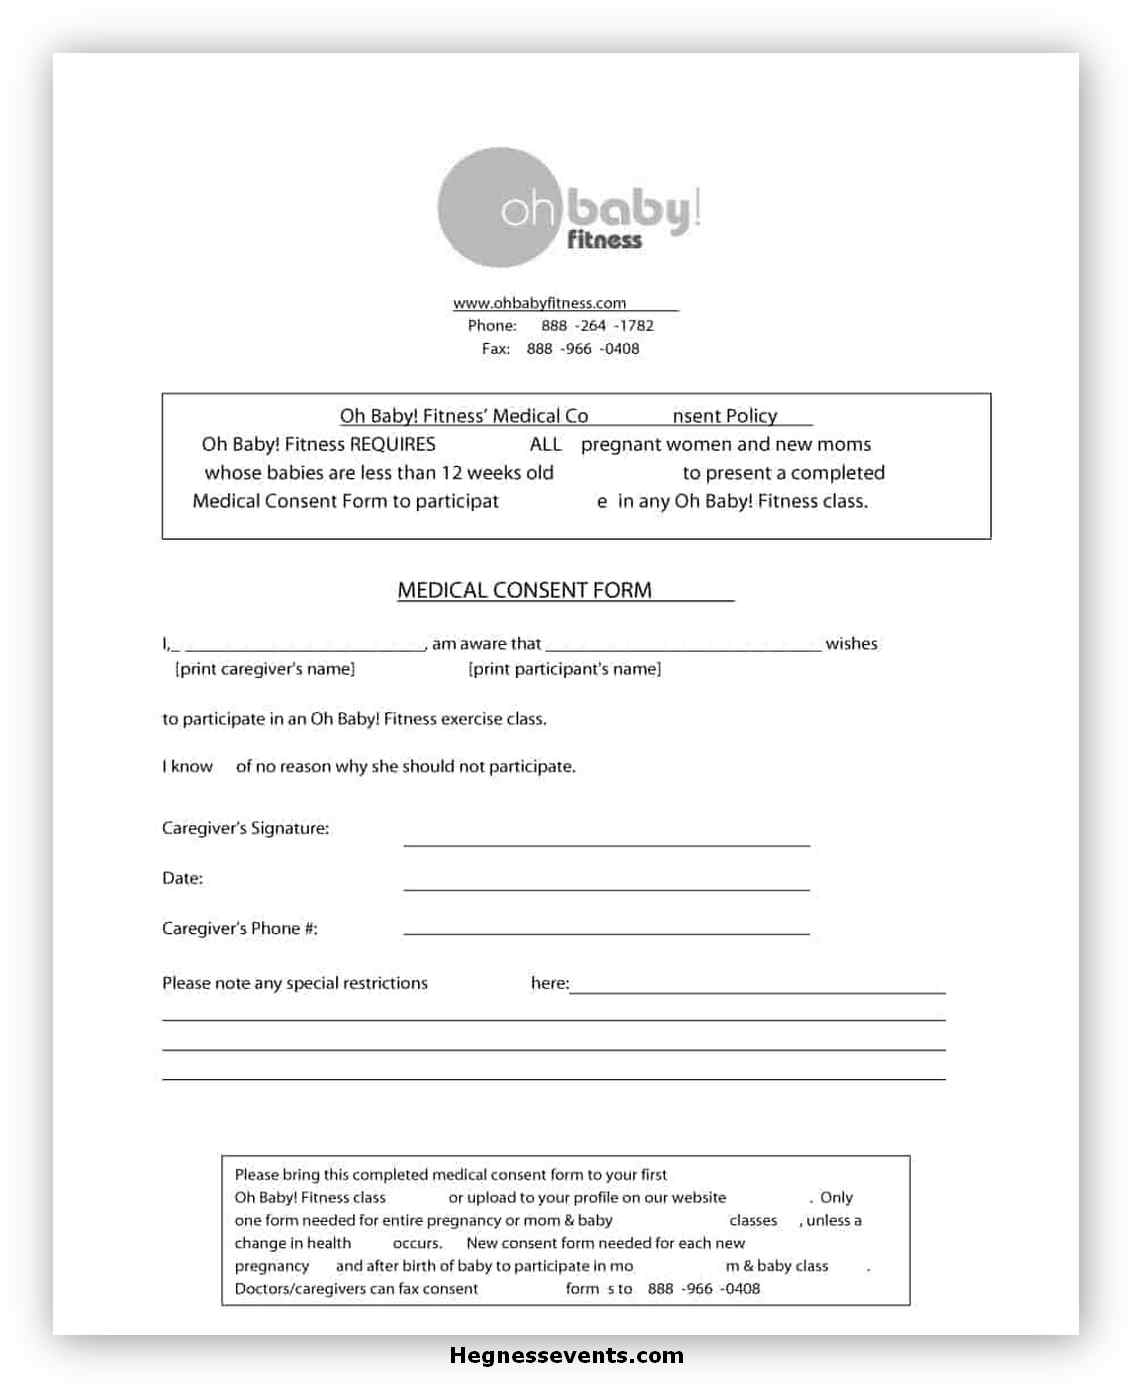 Medical Consent Form Printable 13